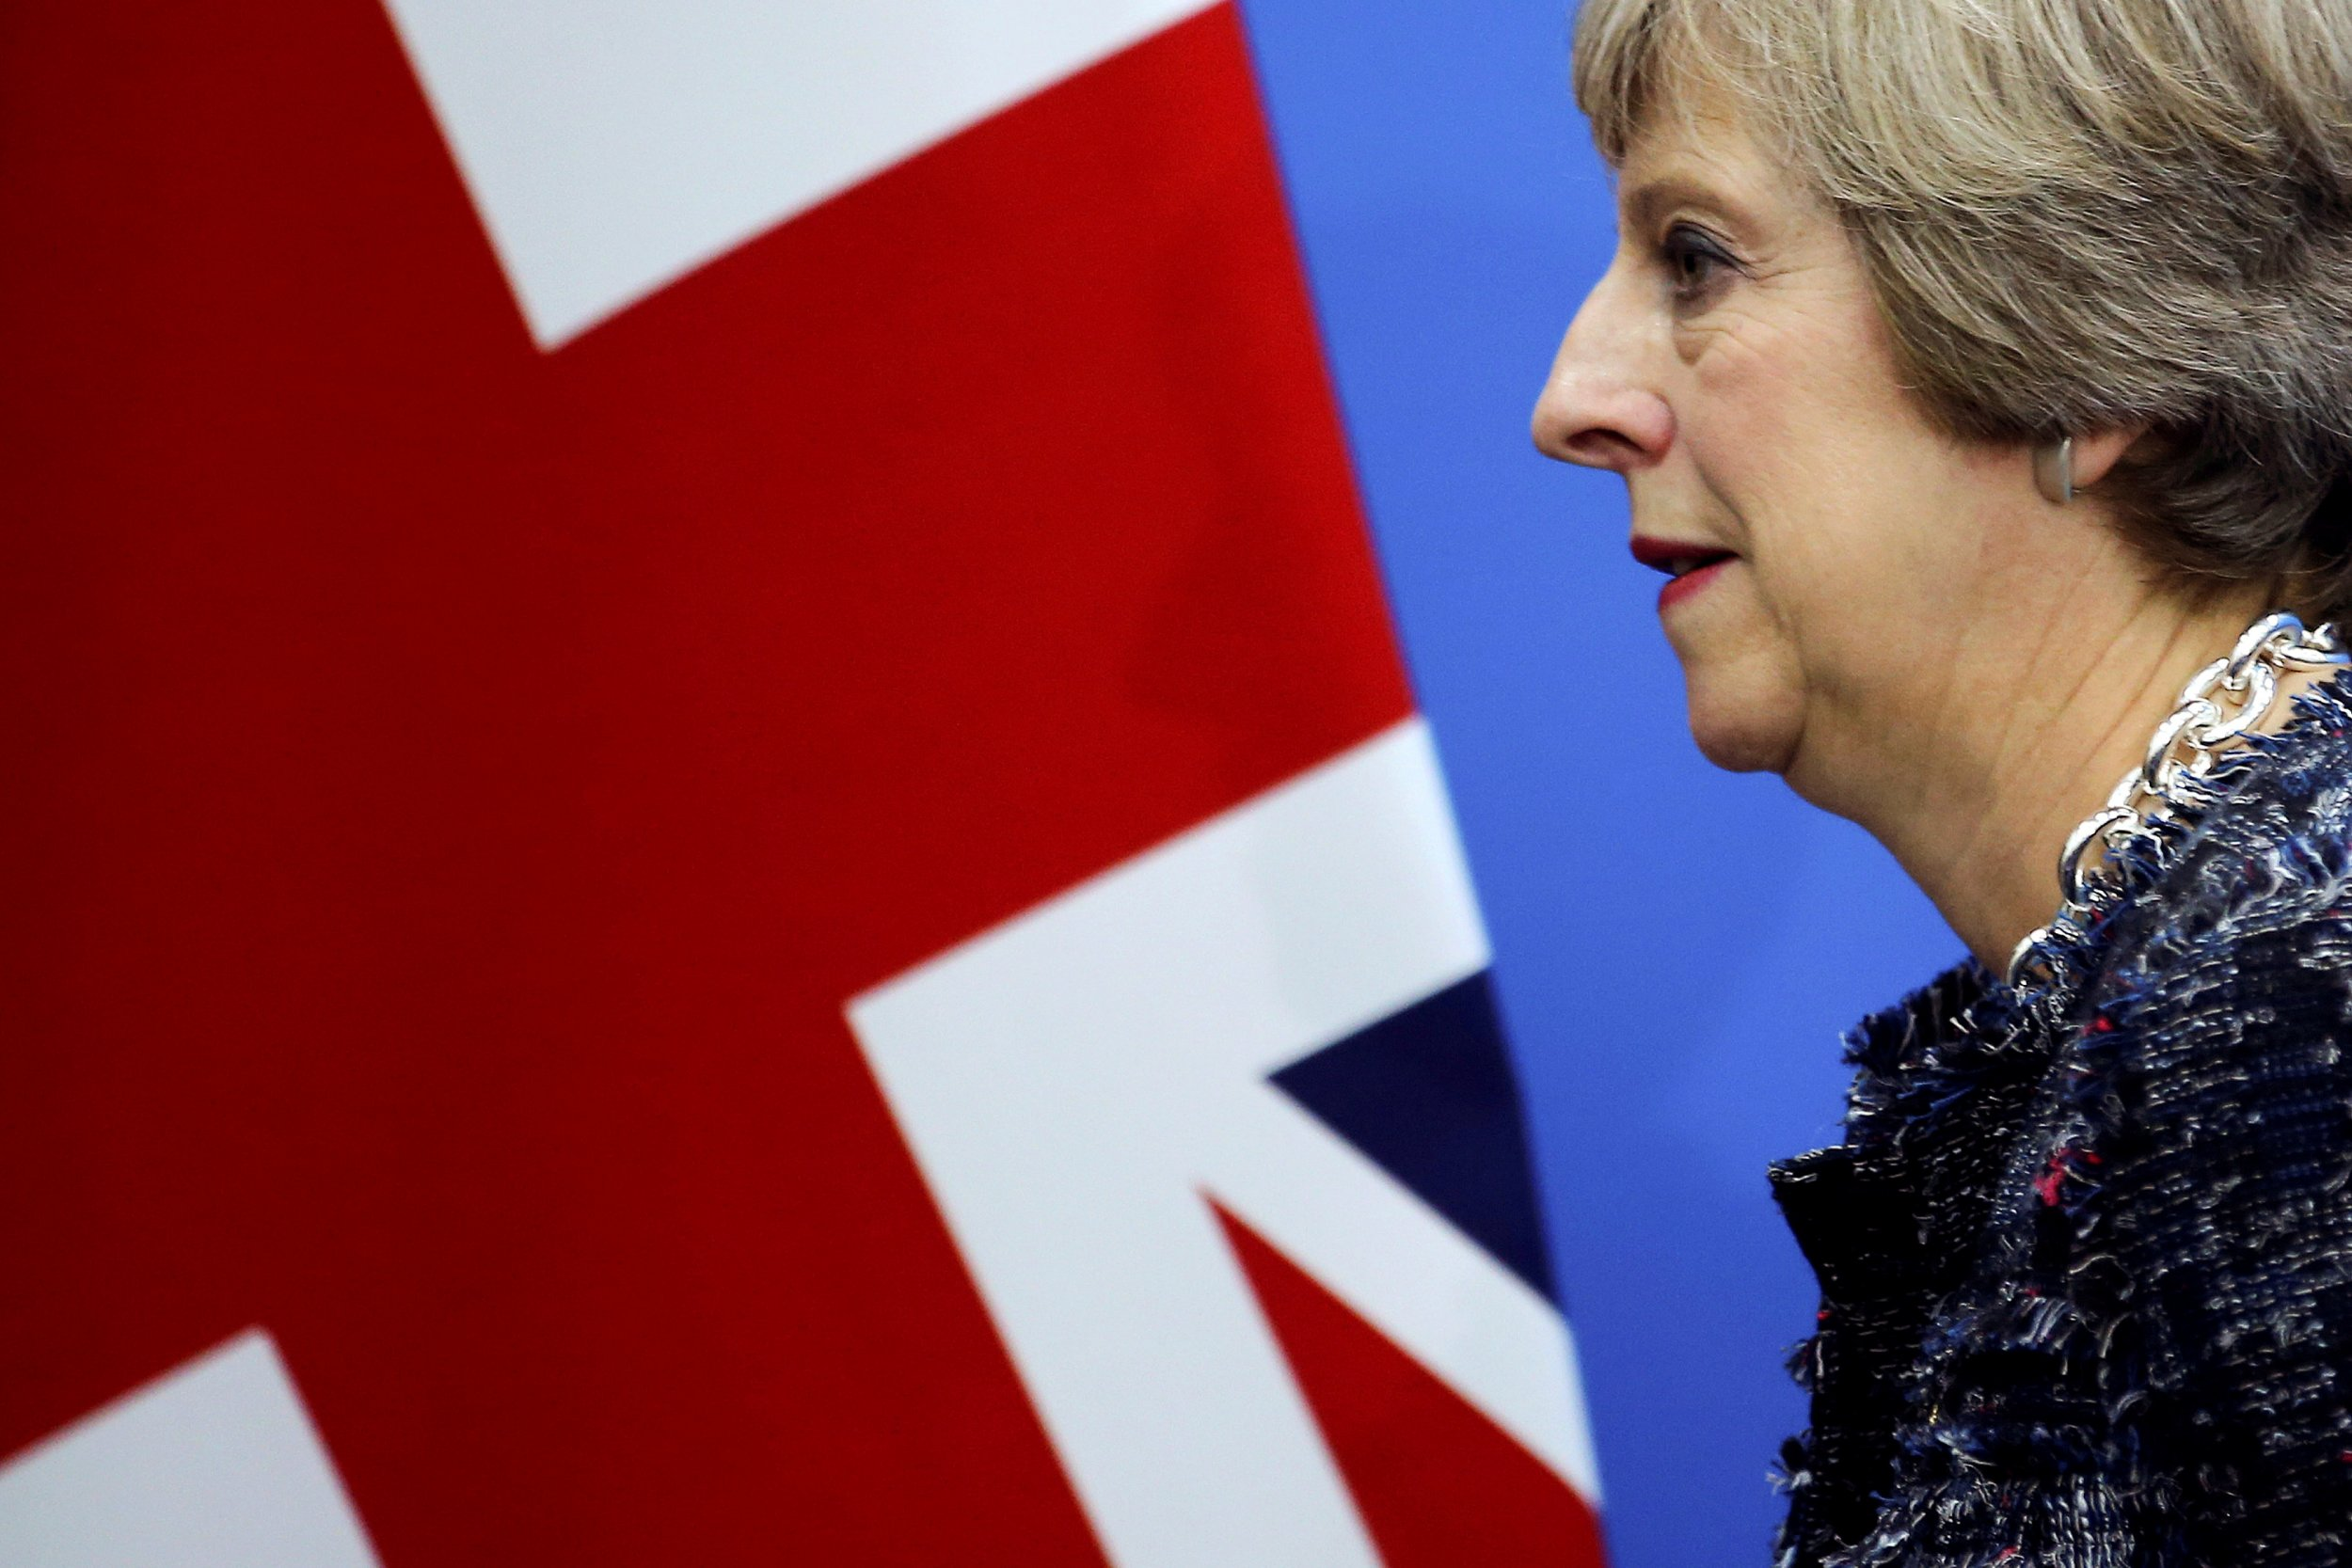 Does Theresa May Know What She's Doing With Brexit?